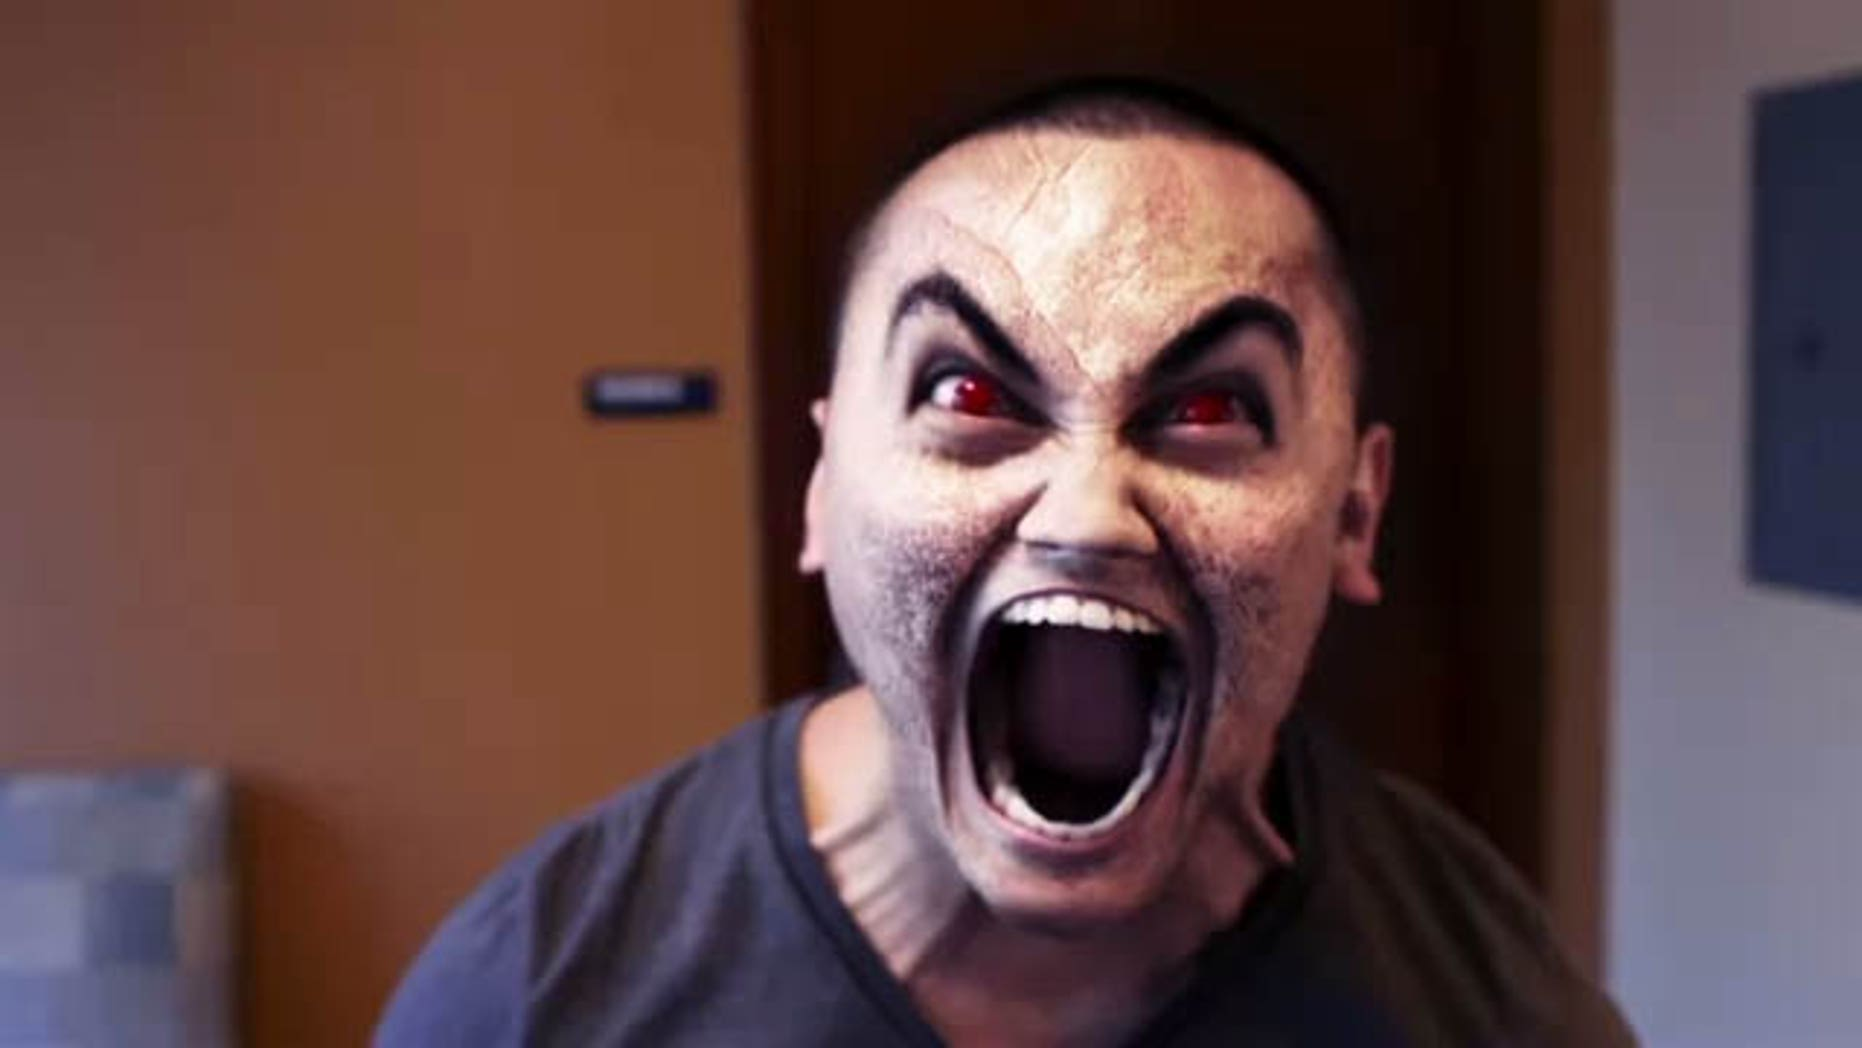 This is a screen shot of a scene in the video when the service member, under the influence of bath salts, returns to his dorm room and believes his roommate has turned demonic.